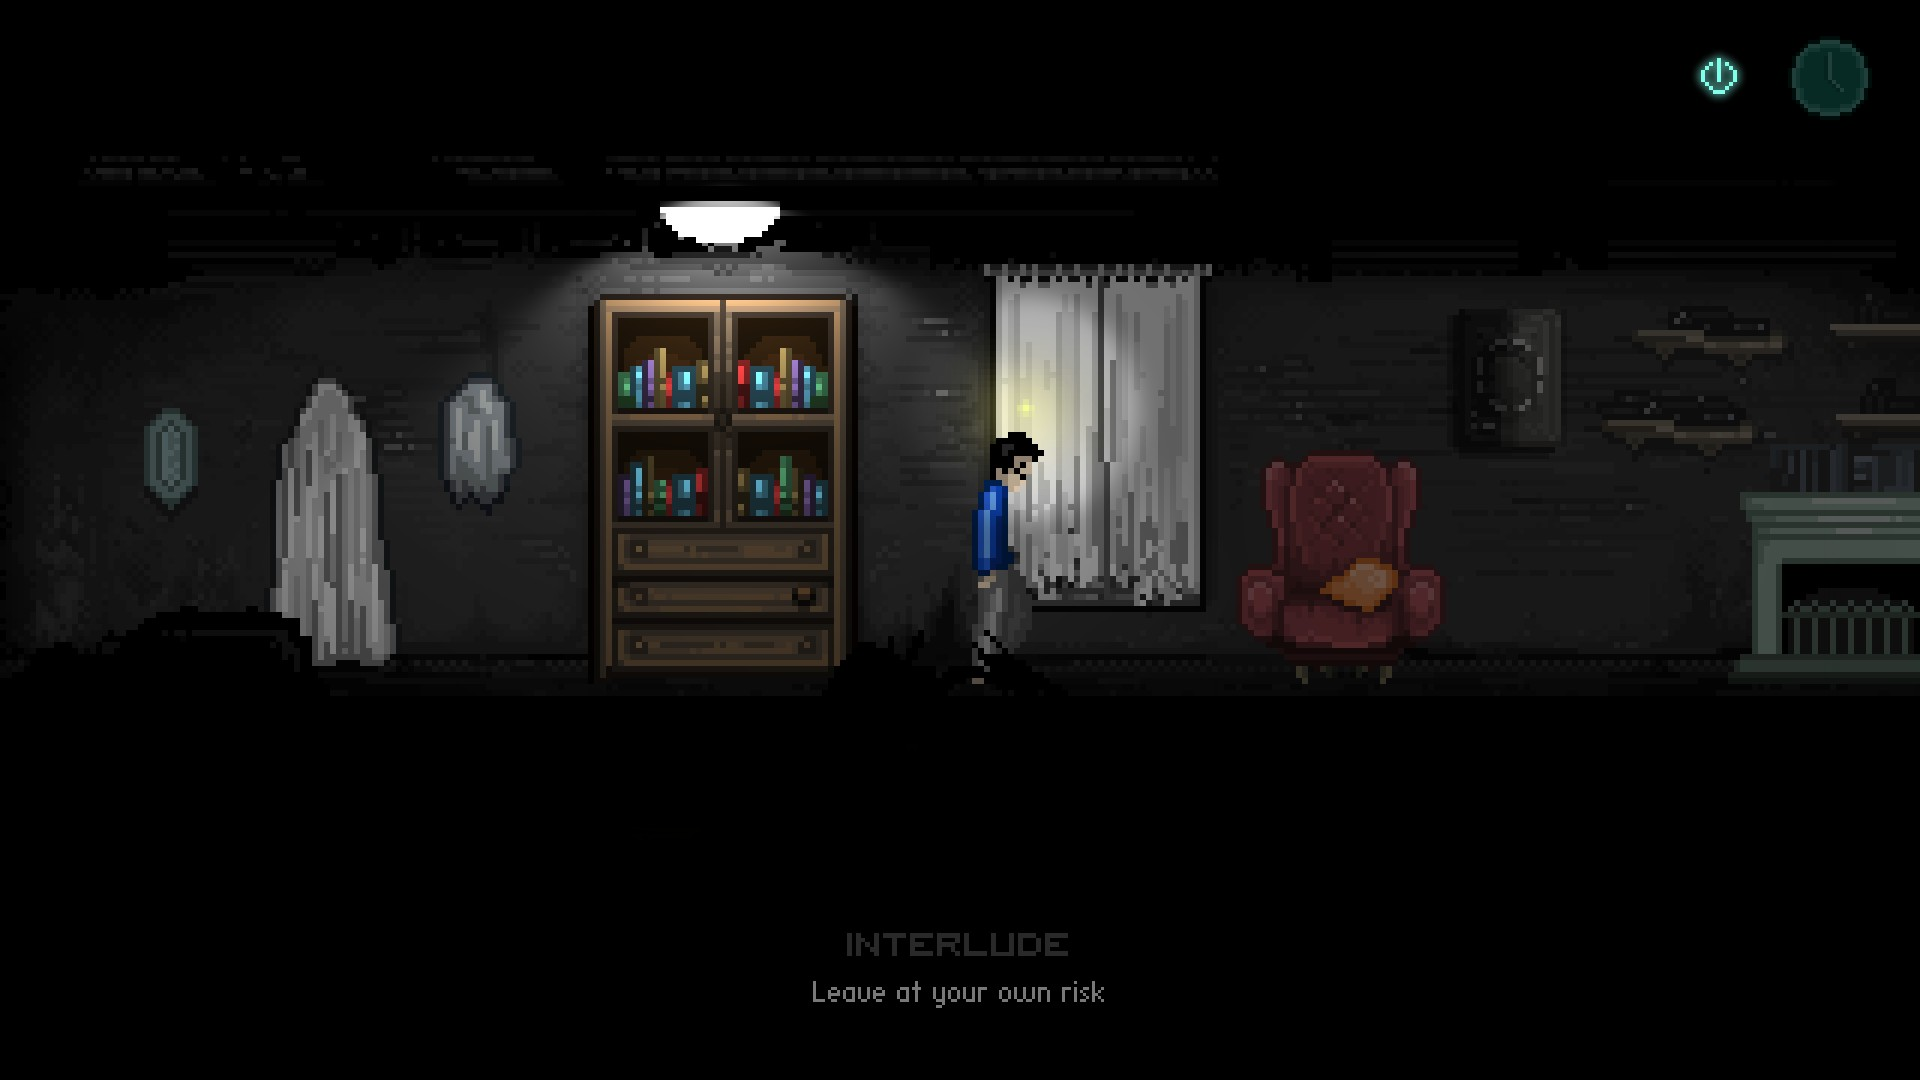 STAY is out now on PC and Mac